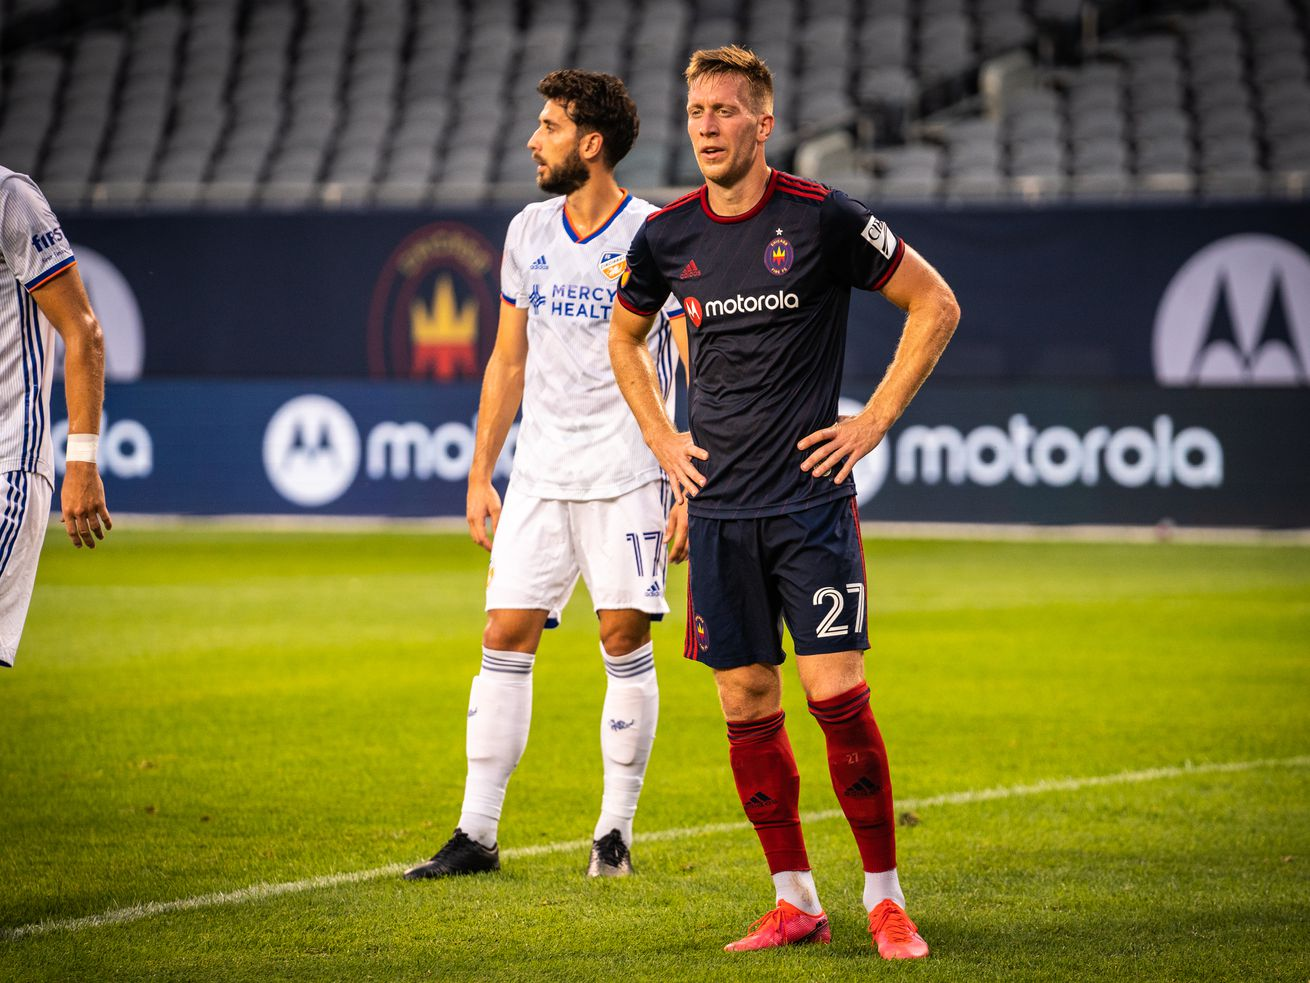 Fire looking to discover finishing edge